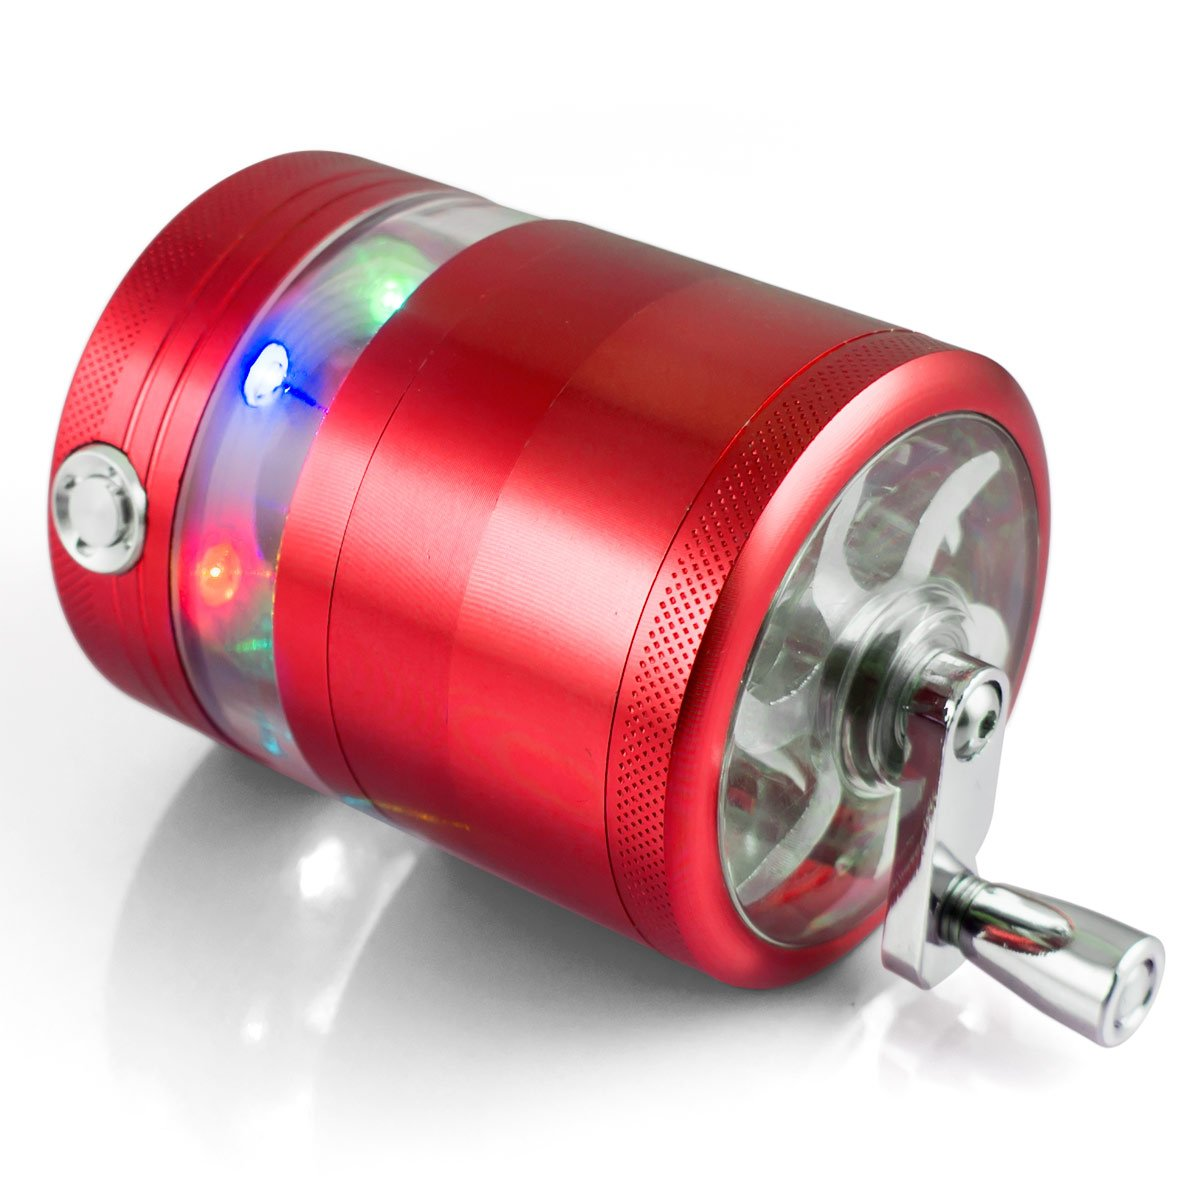 Formax420 Handle Grinder For Tobacco Spice Mill Crusher With LED 5 Parts 2.5 inch (Red) Formax-0152